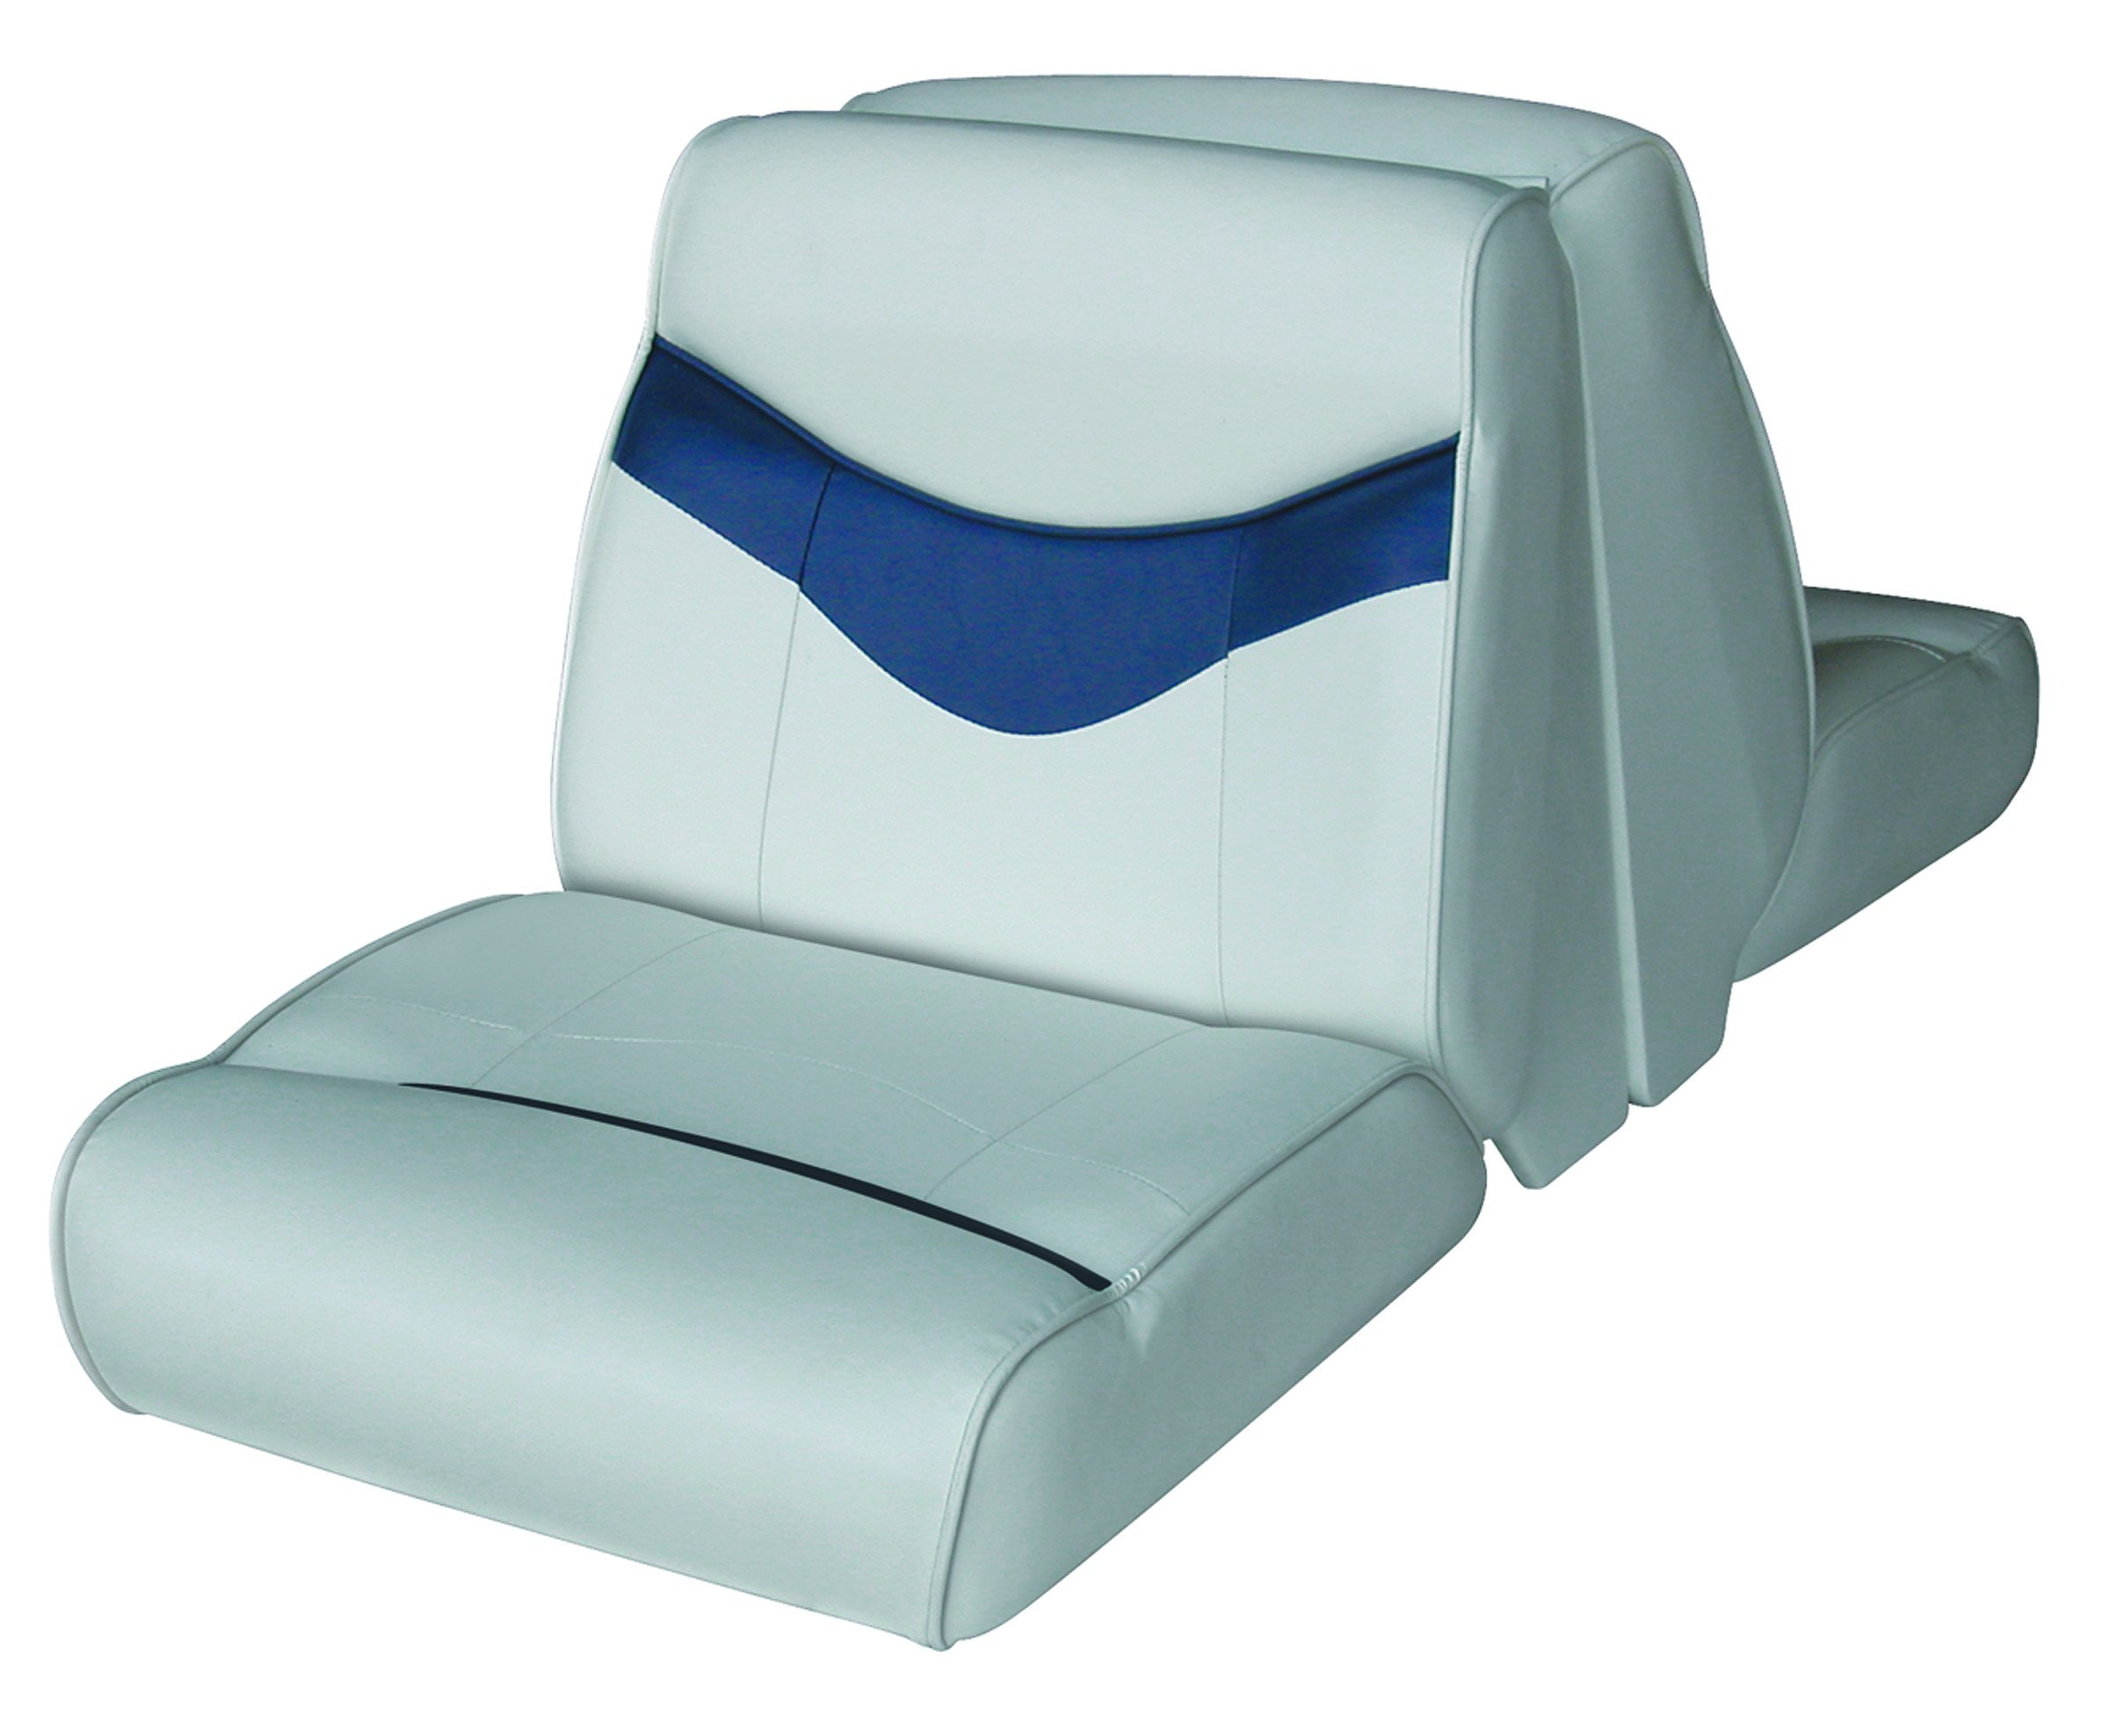 Wise Bayliner Capri and Classic Lounge Seat (Grey/Navy) by Wise